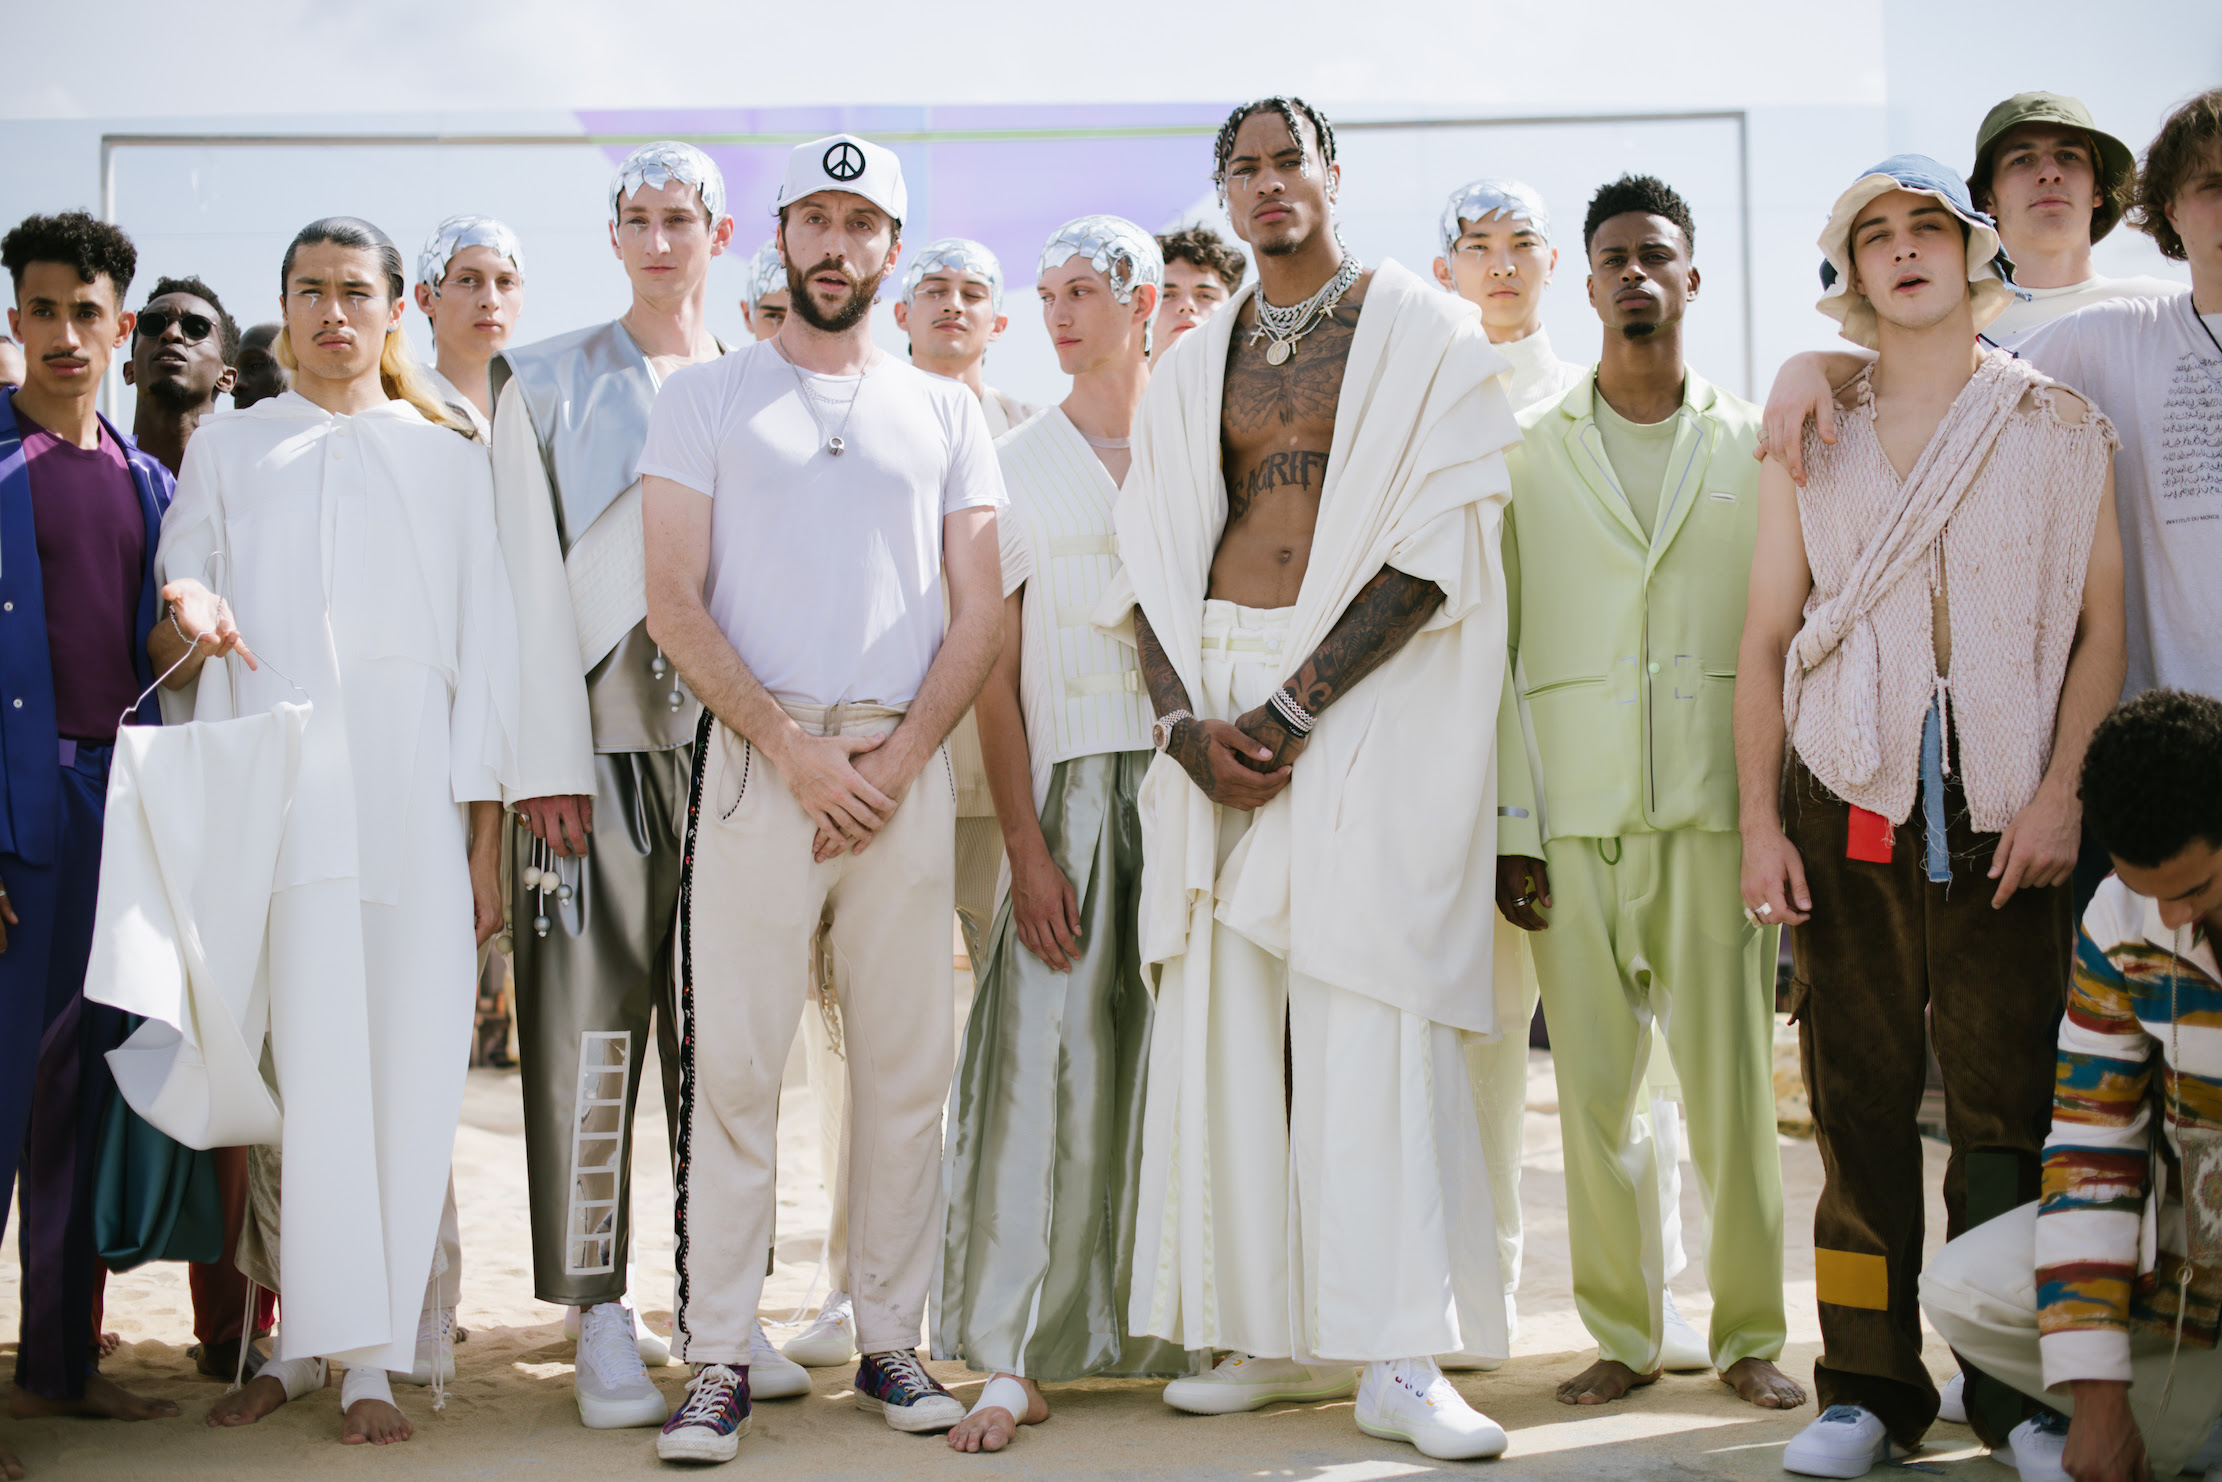 Kelly Oubre Jr. Debuts Converse x Pigalle All Star Pro BB At Pigalle SS20 Paris Fashion Week Presentation